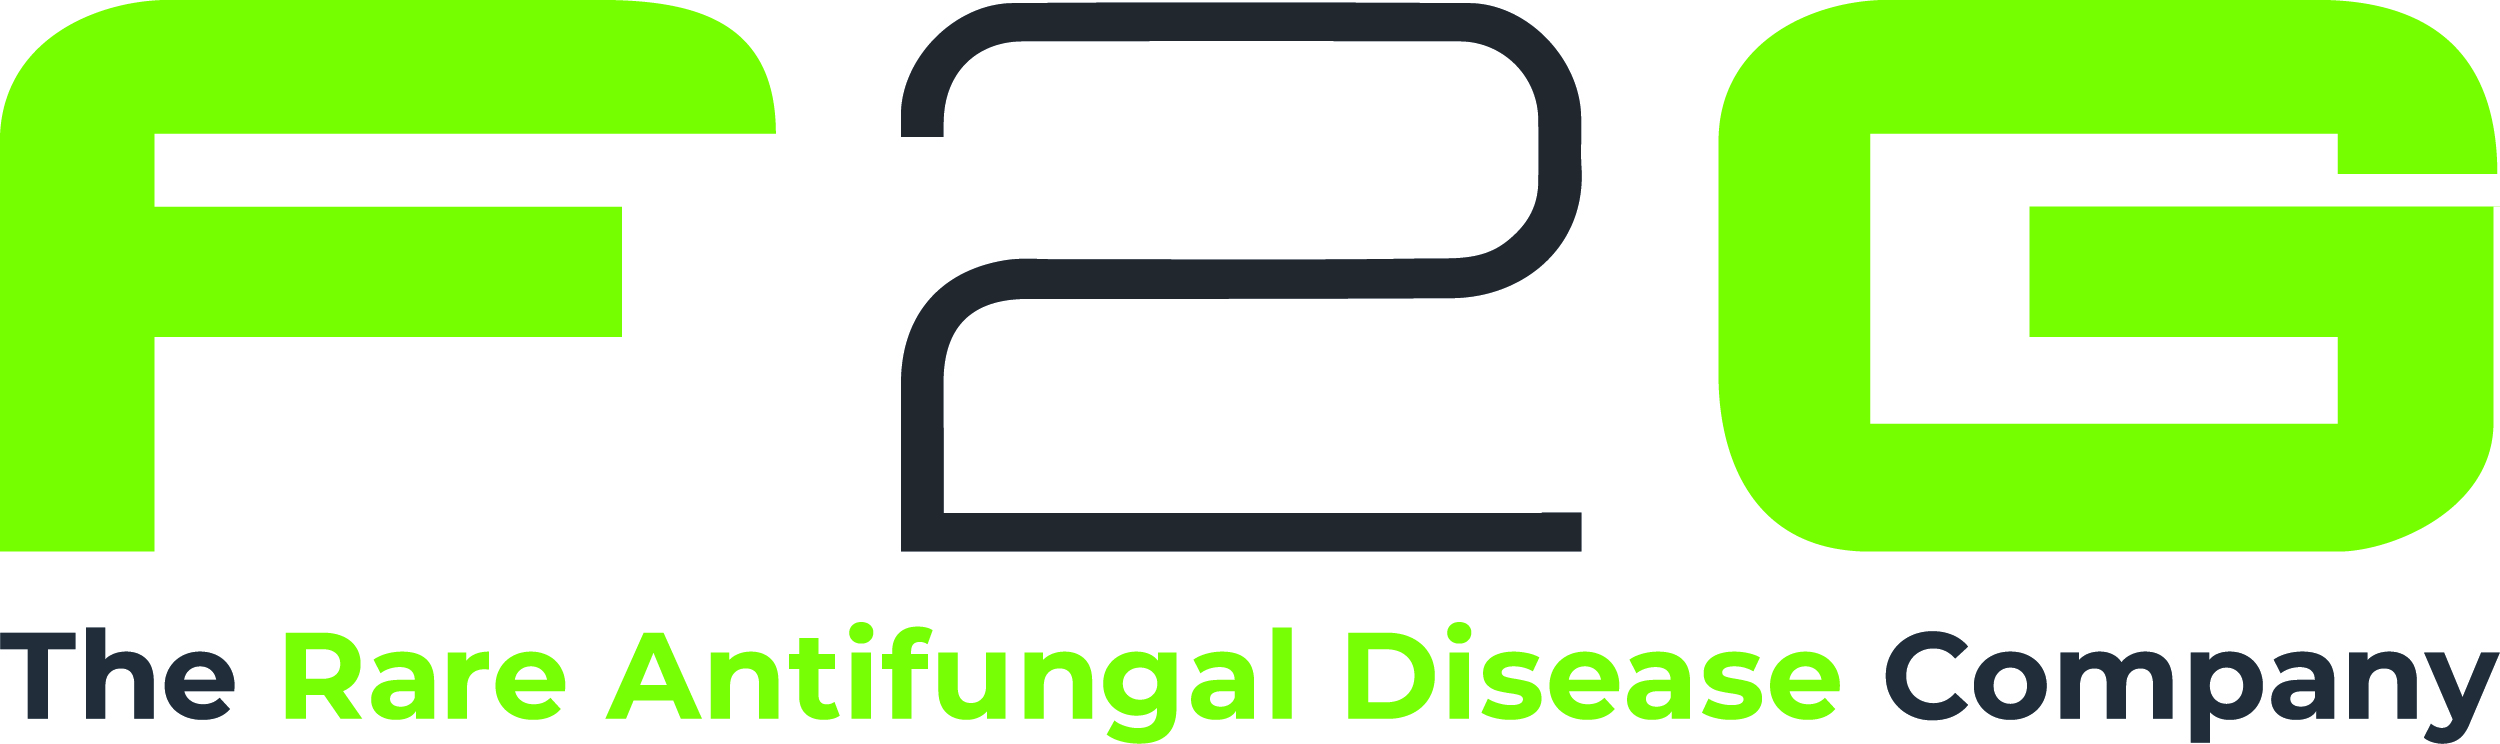 F2G Logo and Strapline 2018.jpg